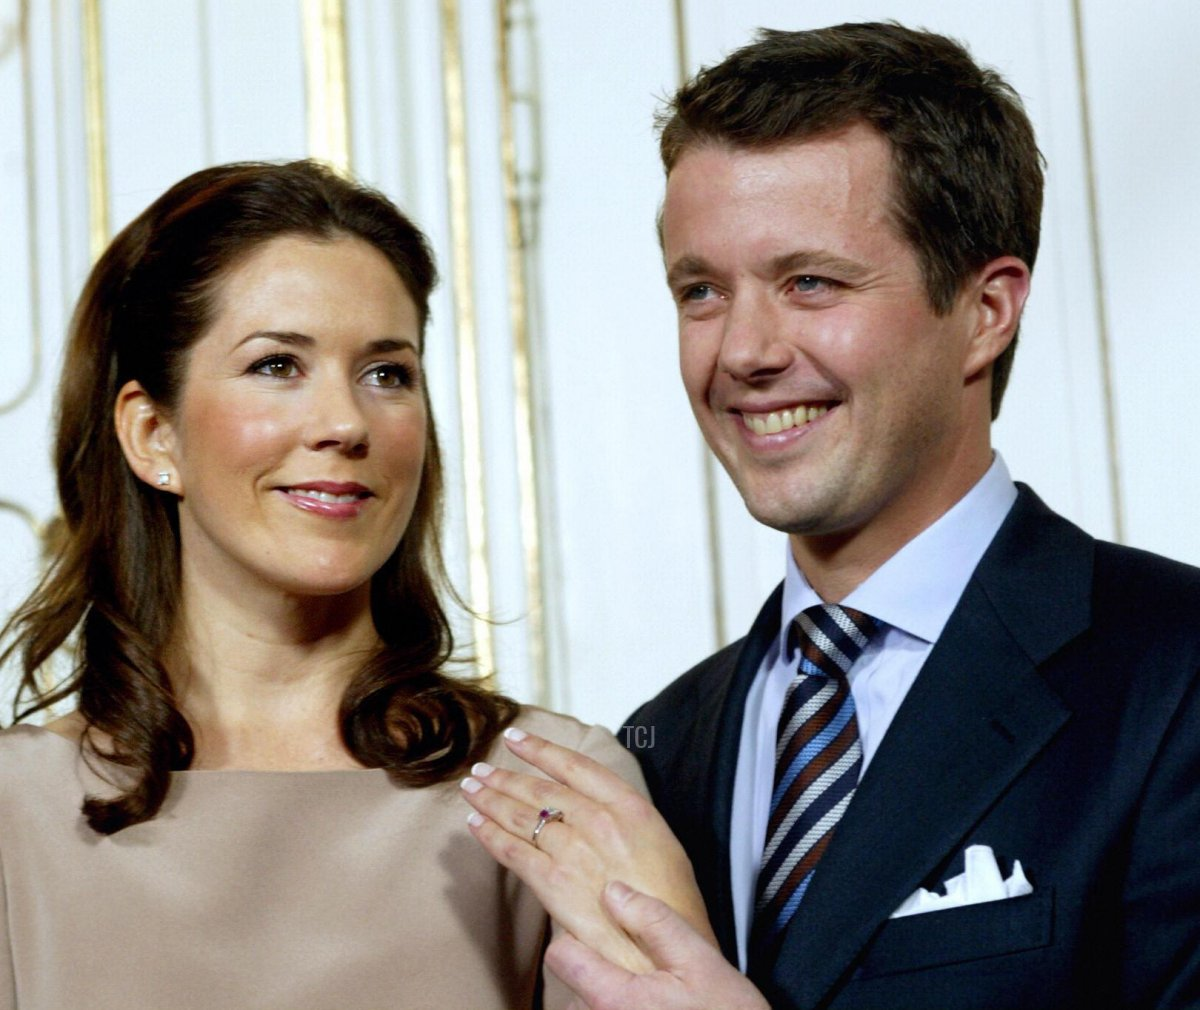 Danish Crown Prince Frederik shows the engagement ring on the hand of his fiancee Mary Donaldson of Australia 08 October 2003 during their first joint press conference at the royal palace of Fredensborg north of Copenhagen after the official announcement